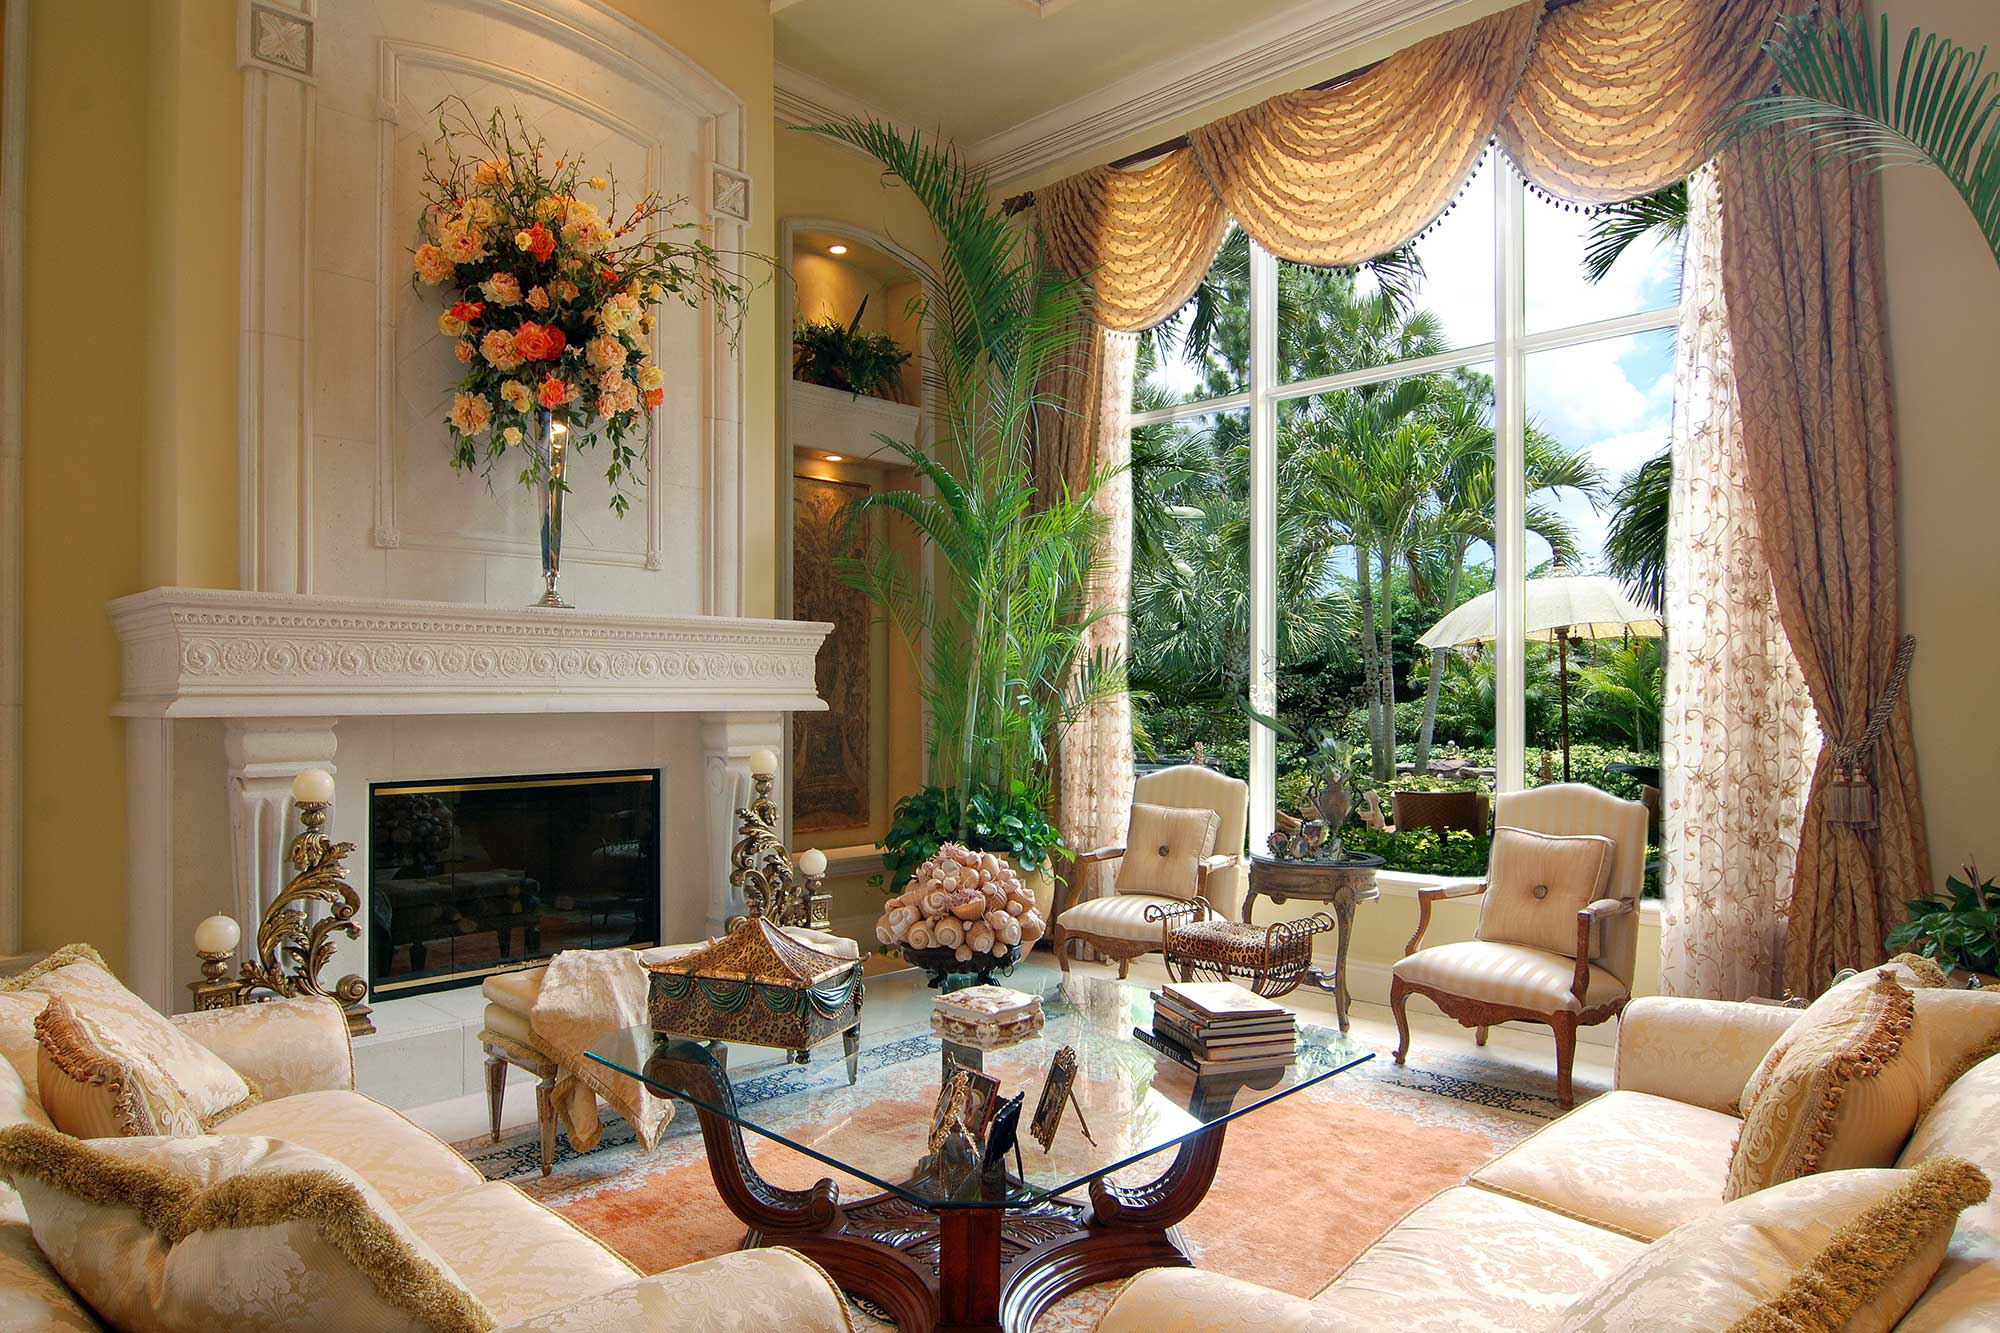 Estate in palm beach gardens annie santulli designs for Interior designers palm beach